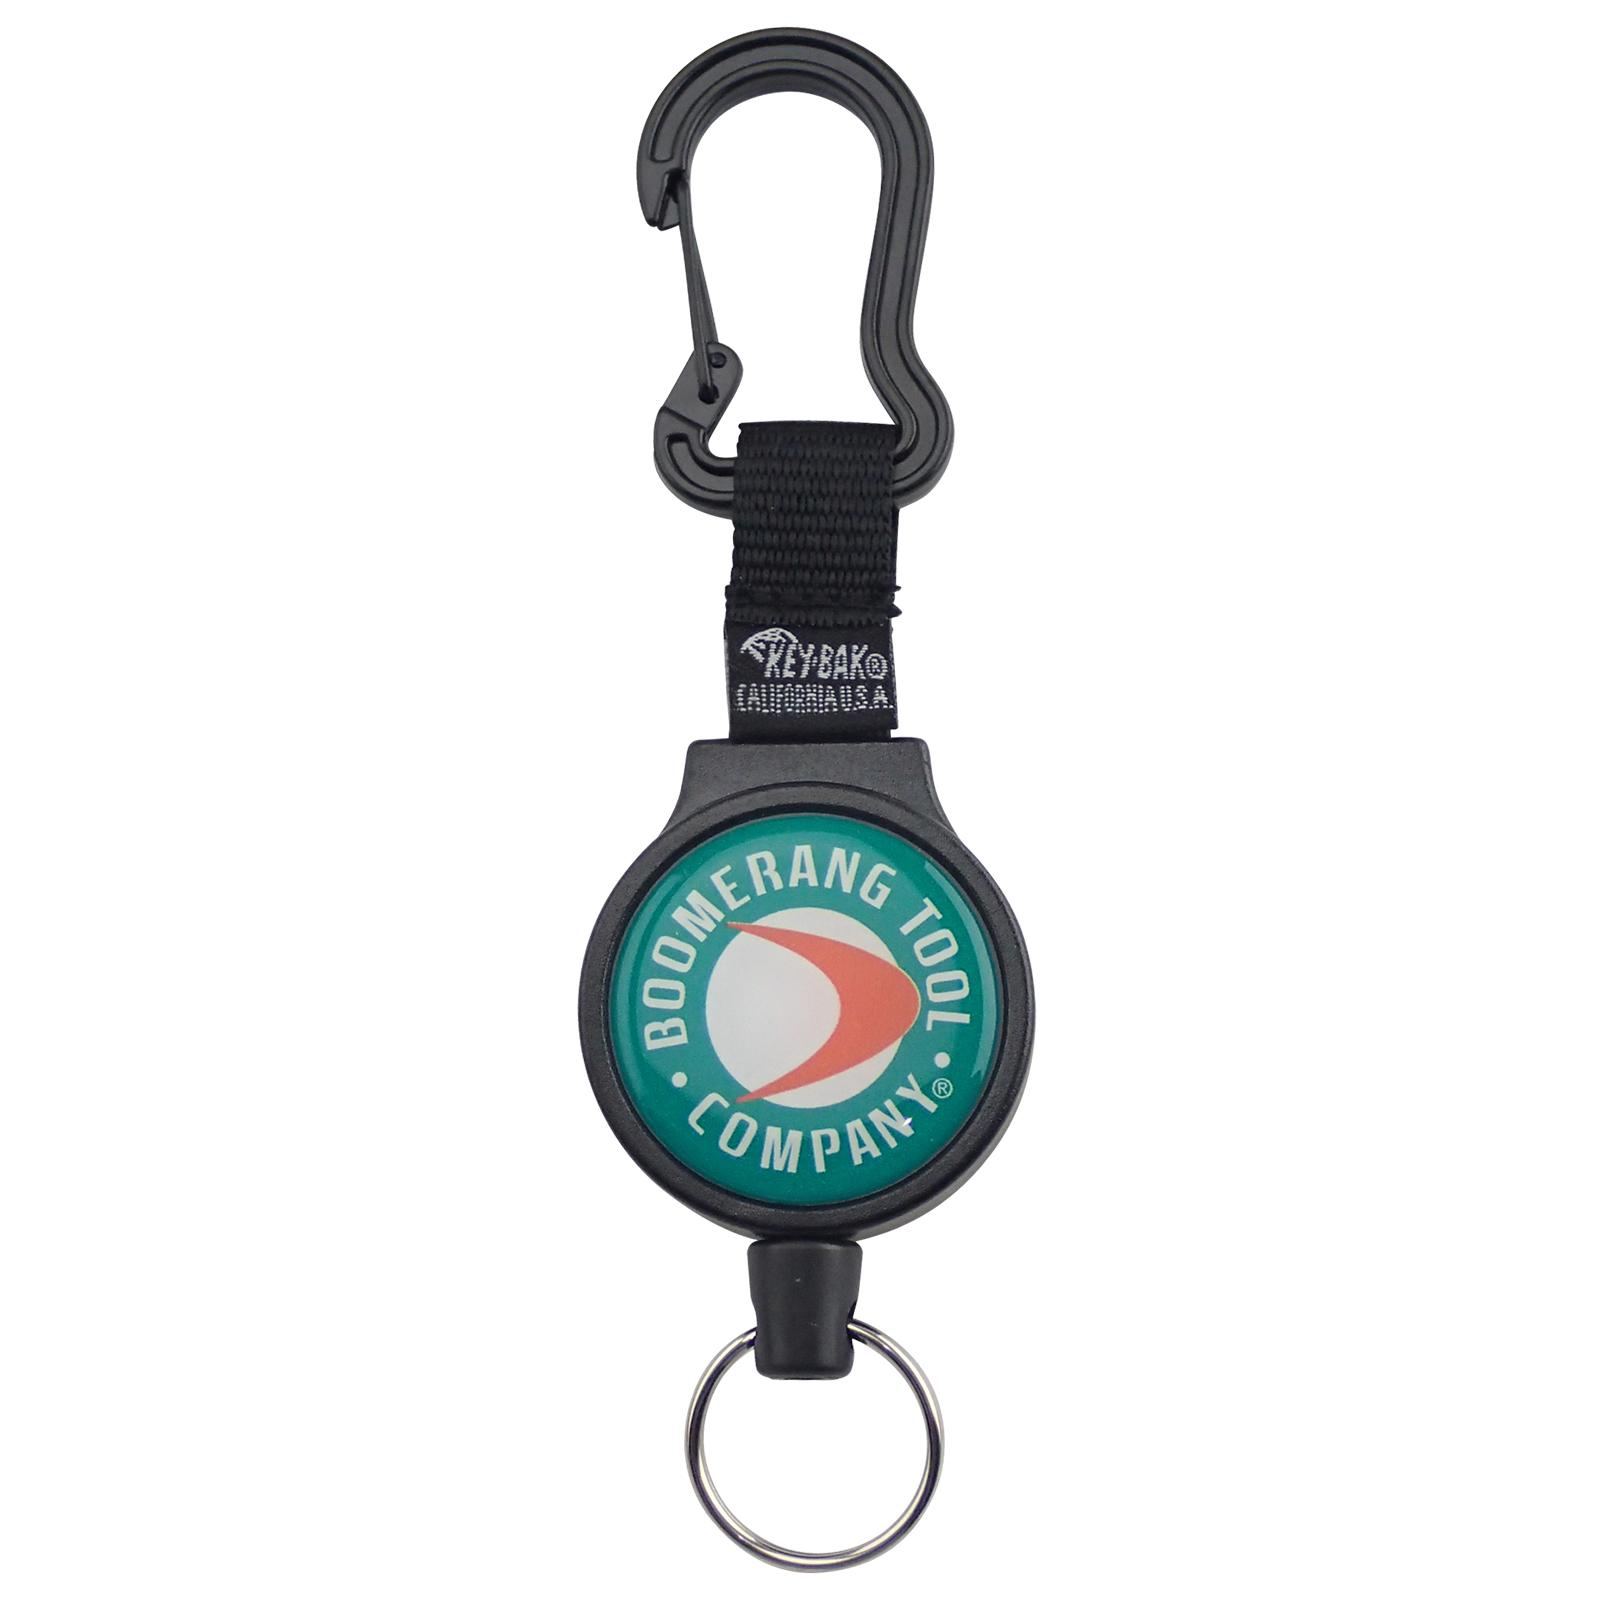 Boomerang Tool Co. Heavy-Duty Fishing Zinger with Carabiner